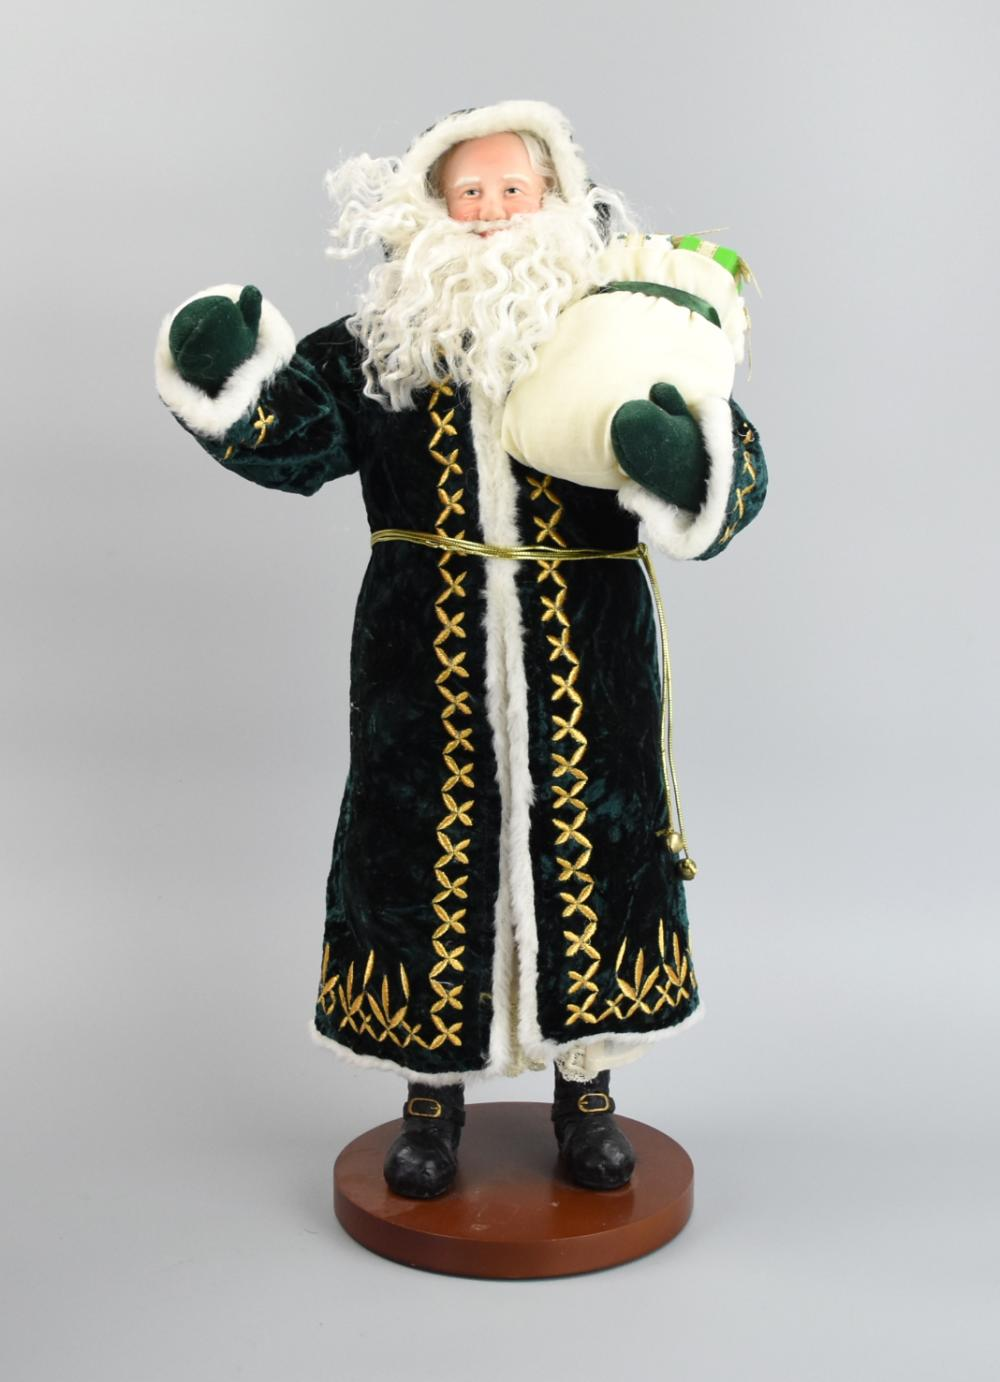 Sold Price Waterford Irish Splendor Santa Figurine April 1 0120 10 30 Am Edt